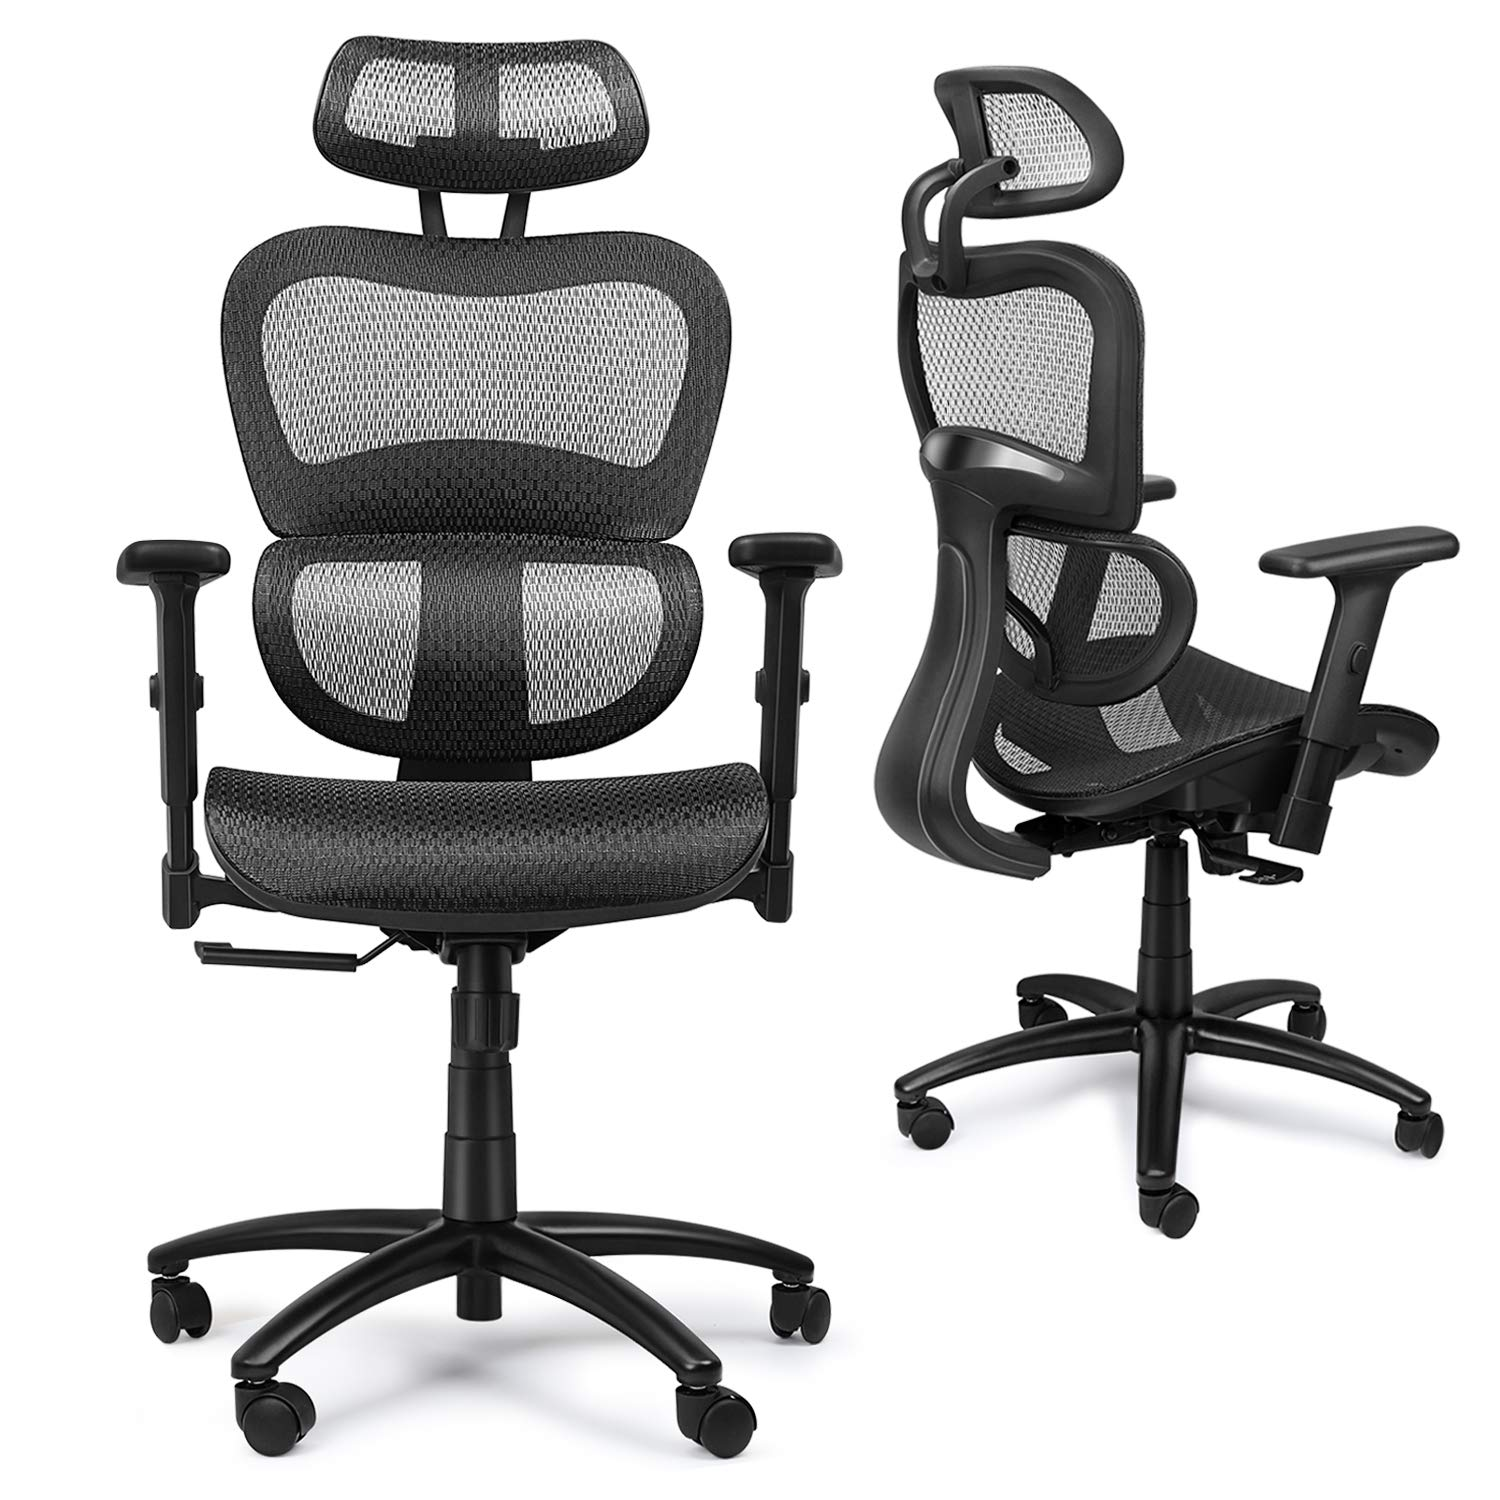 Mysuntown Office Mesh Chair, Ergonomic Task Chair with Back&Lumbar Support, Adjustable Headrest & Adjustable Armrests (Black)